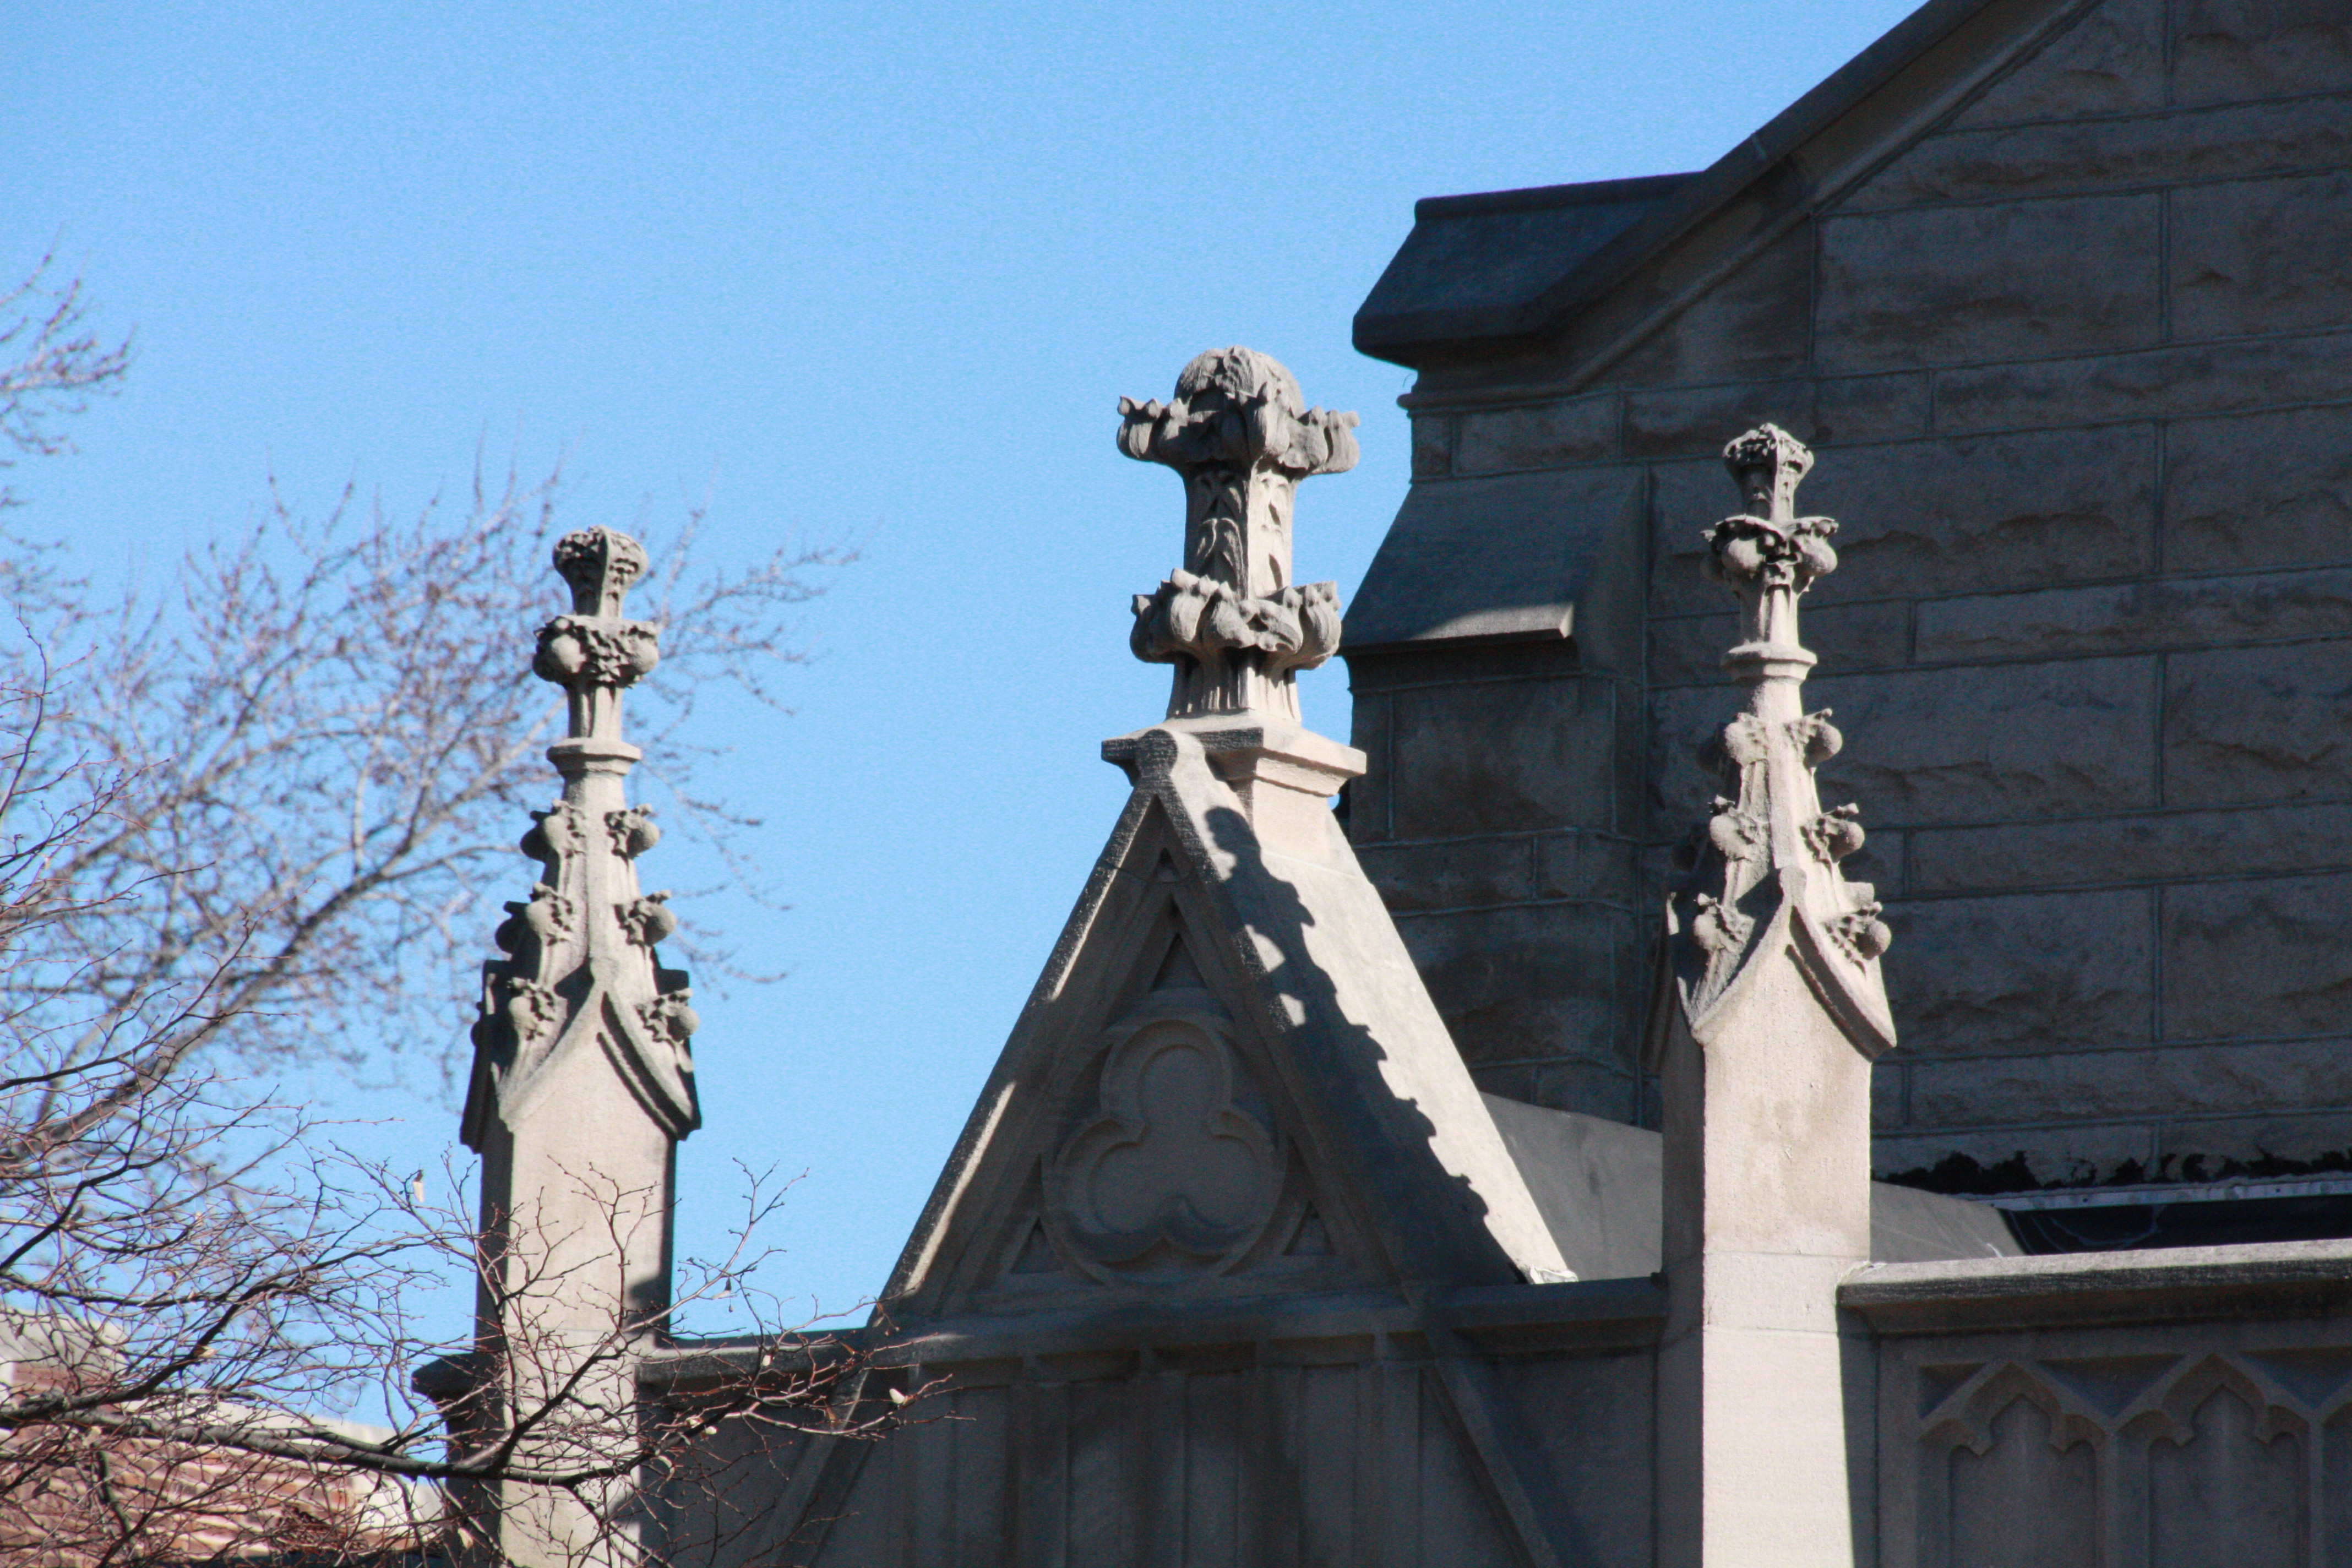 Building Language: Finial